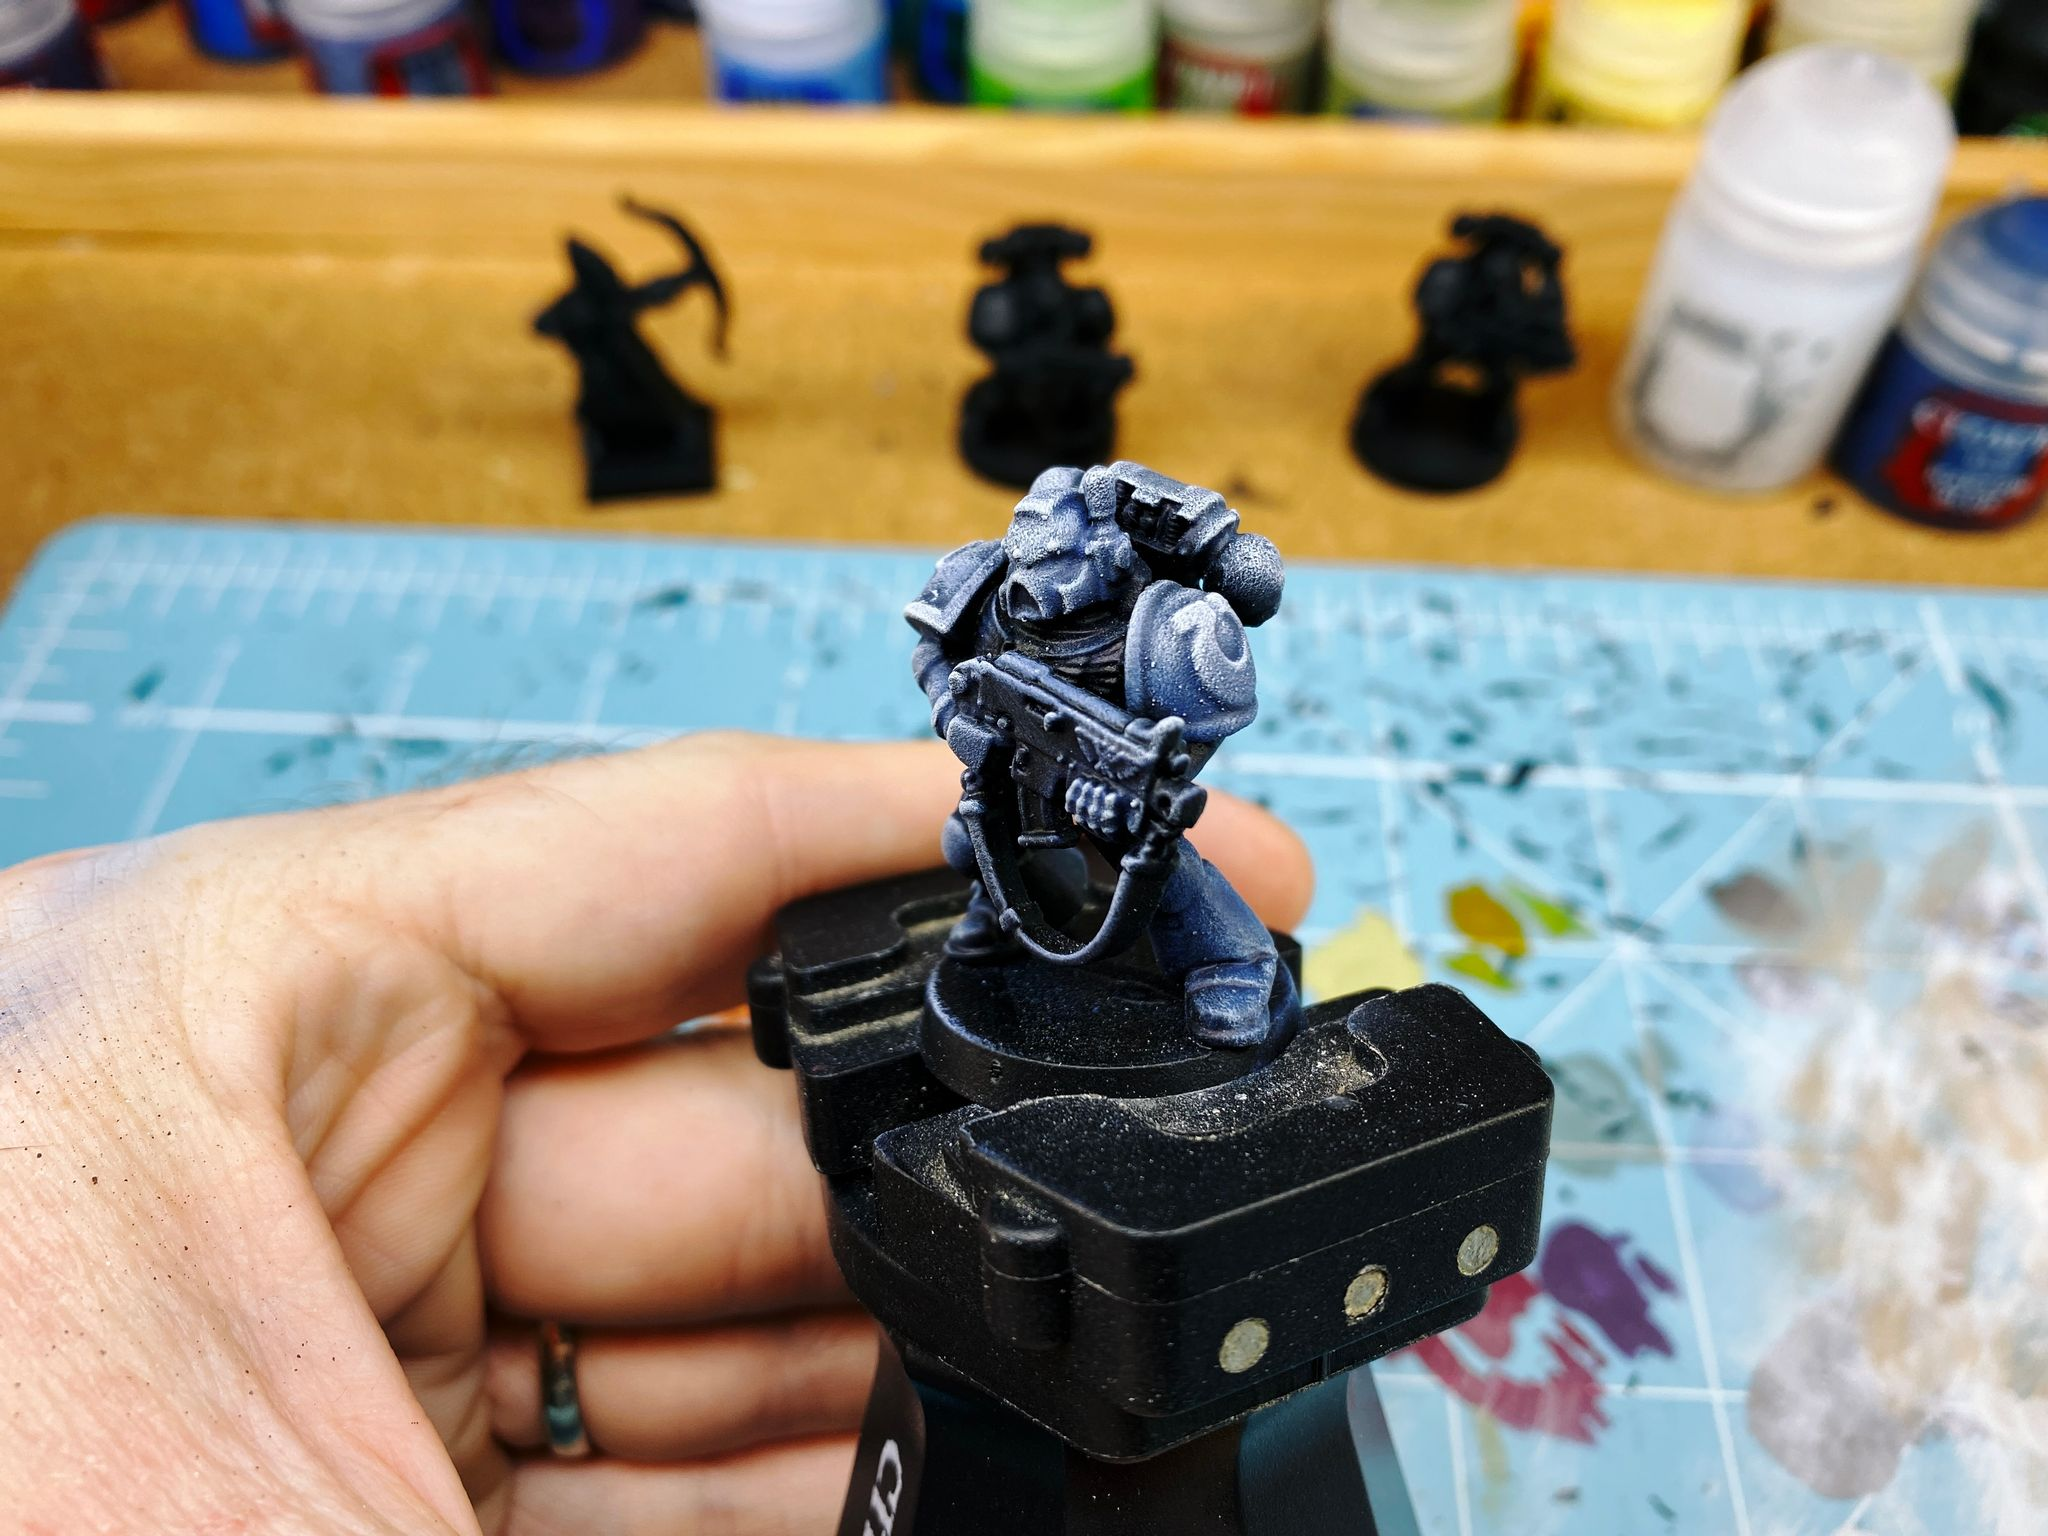 A photo of one of the old early 2000s Warhammer 40,000 Space Marine miniatures that's base-coated black but drybrushed in a gradient in blue-greys up to almost white in a lovely gradient.